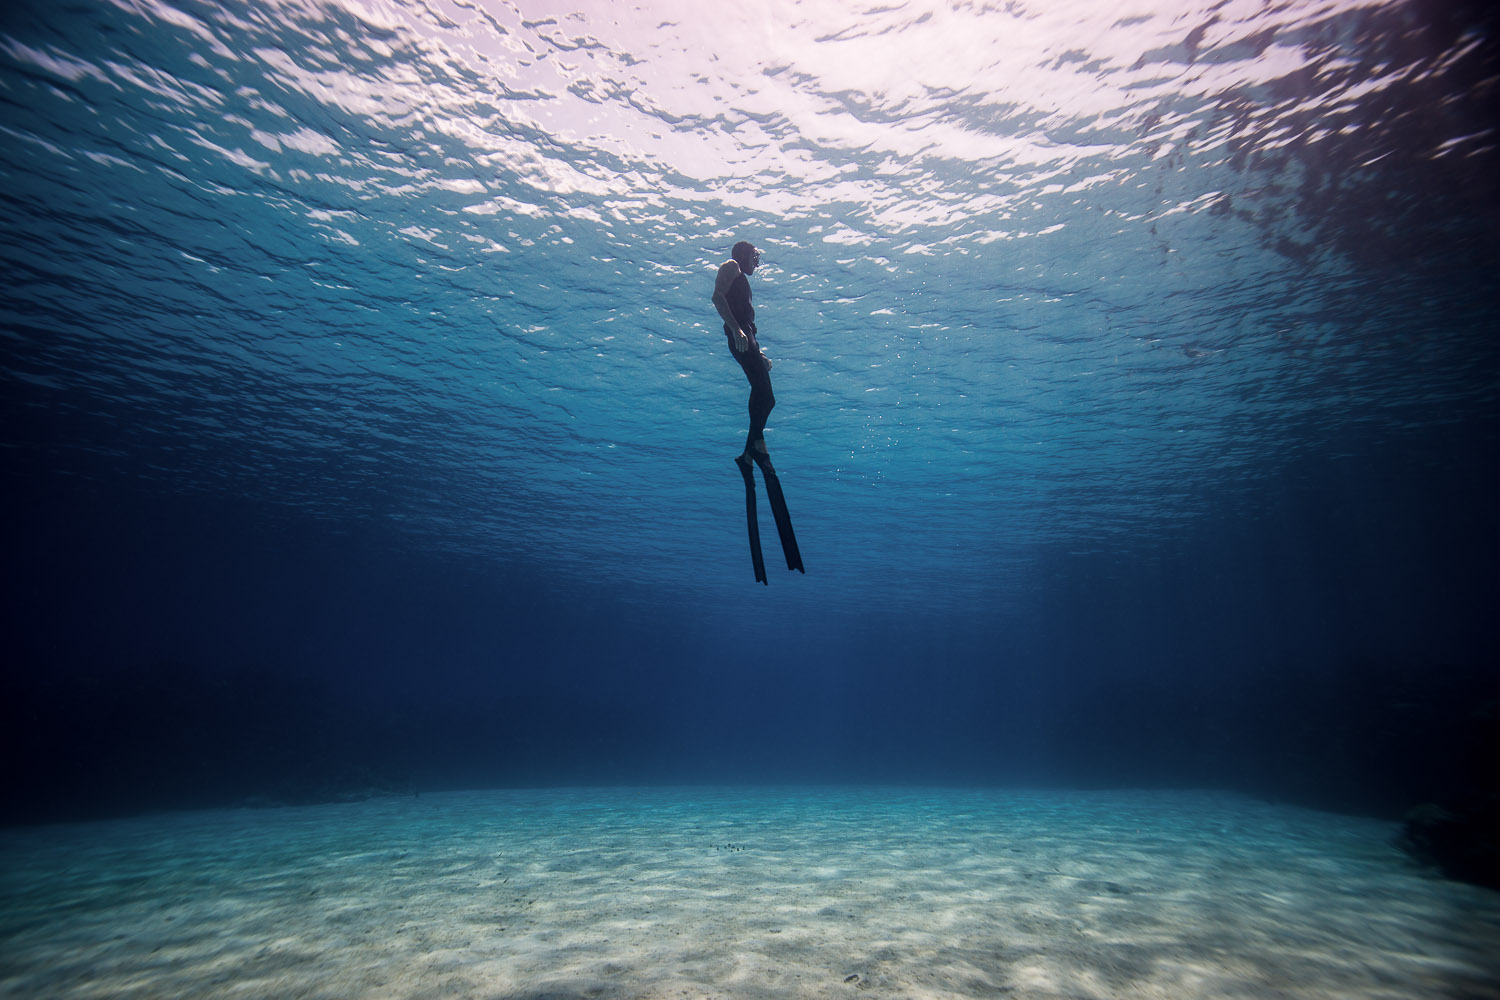 Freediving & Minimalism